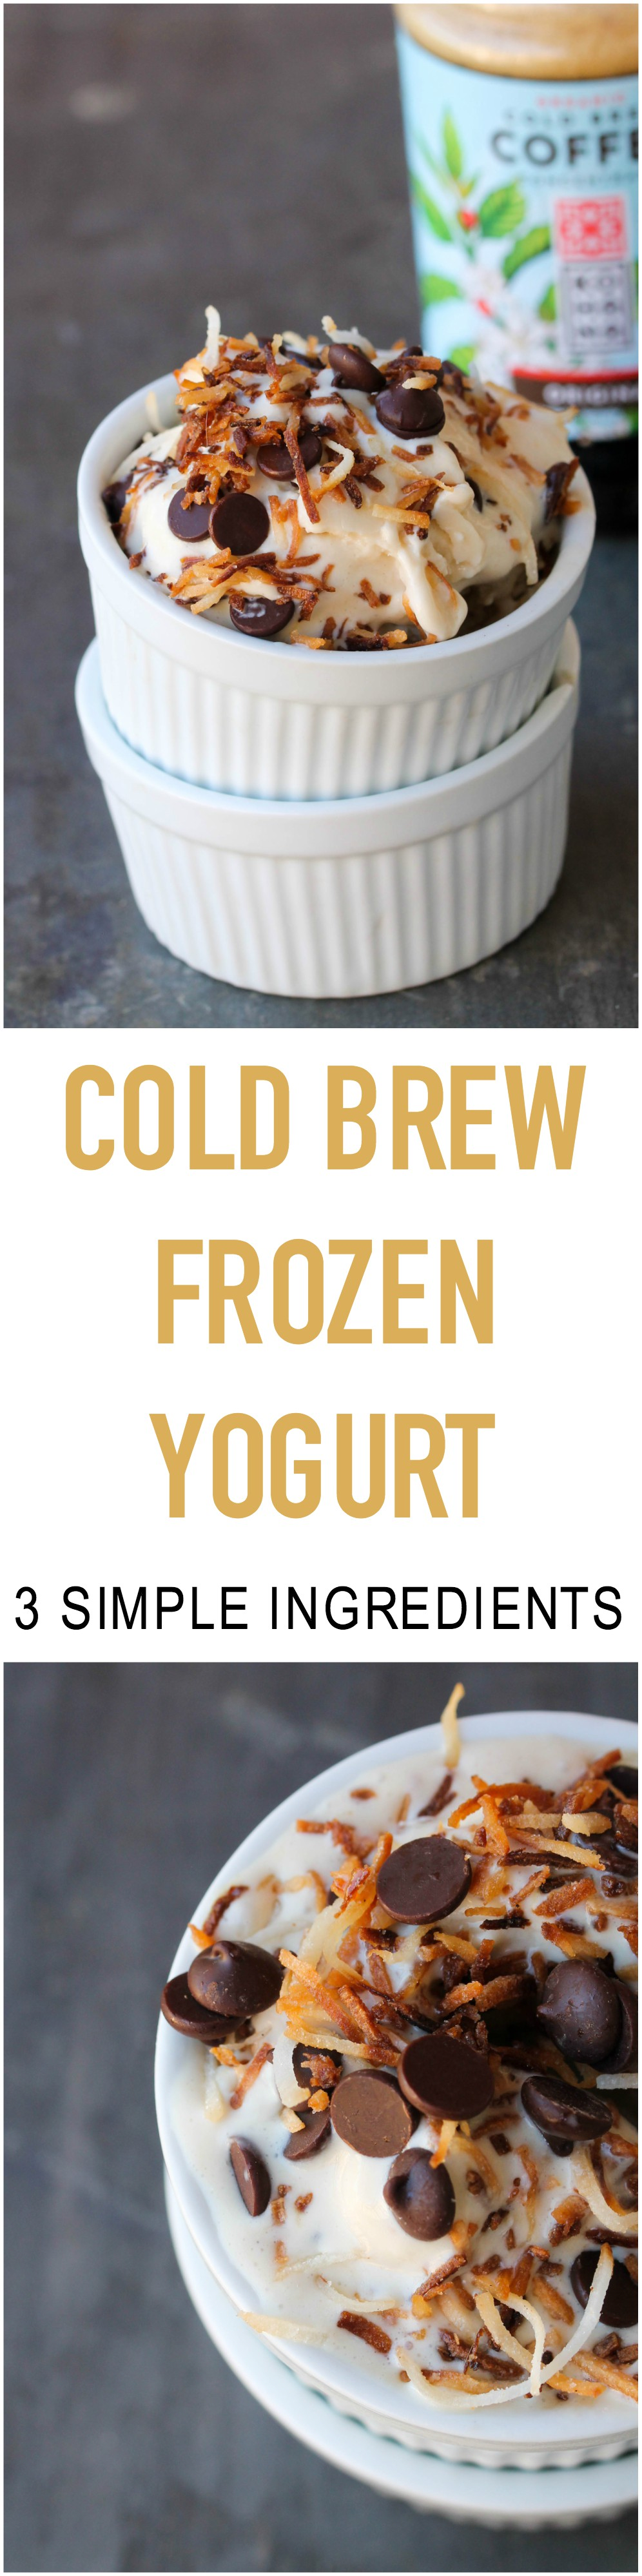 Cold Brew Froyo made with 3 simple ingredients: yogurt, cold brew coffee, and naturally sweetened with honey.